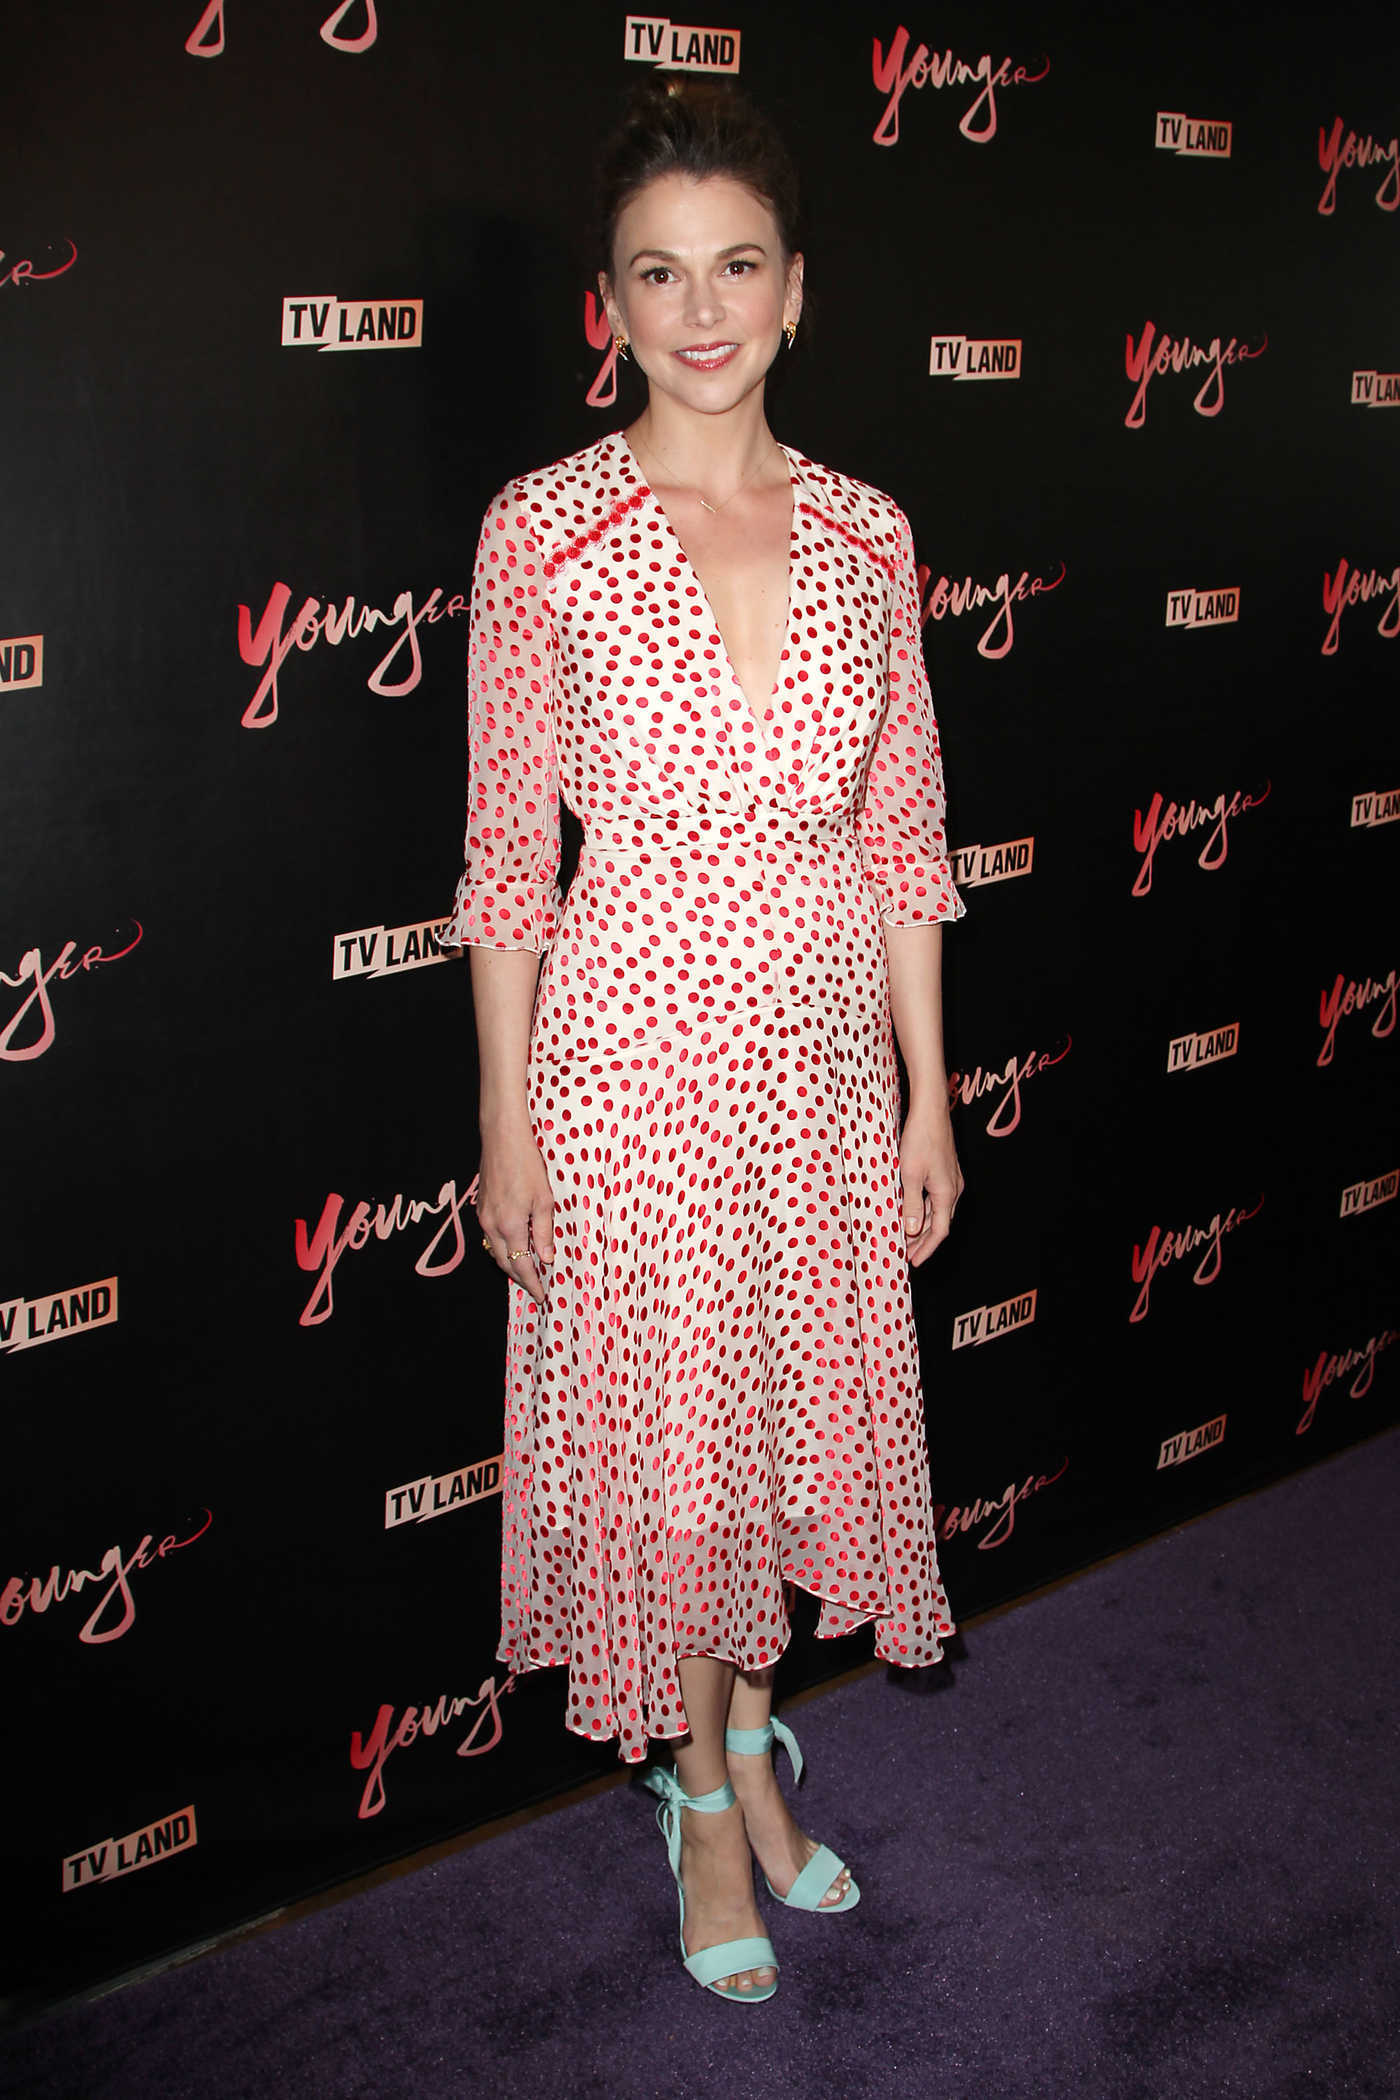 Sutton Foster at Younger Season 4 Premiere in New York 06/27/2017